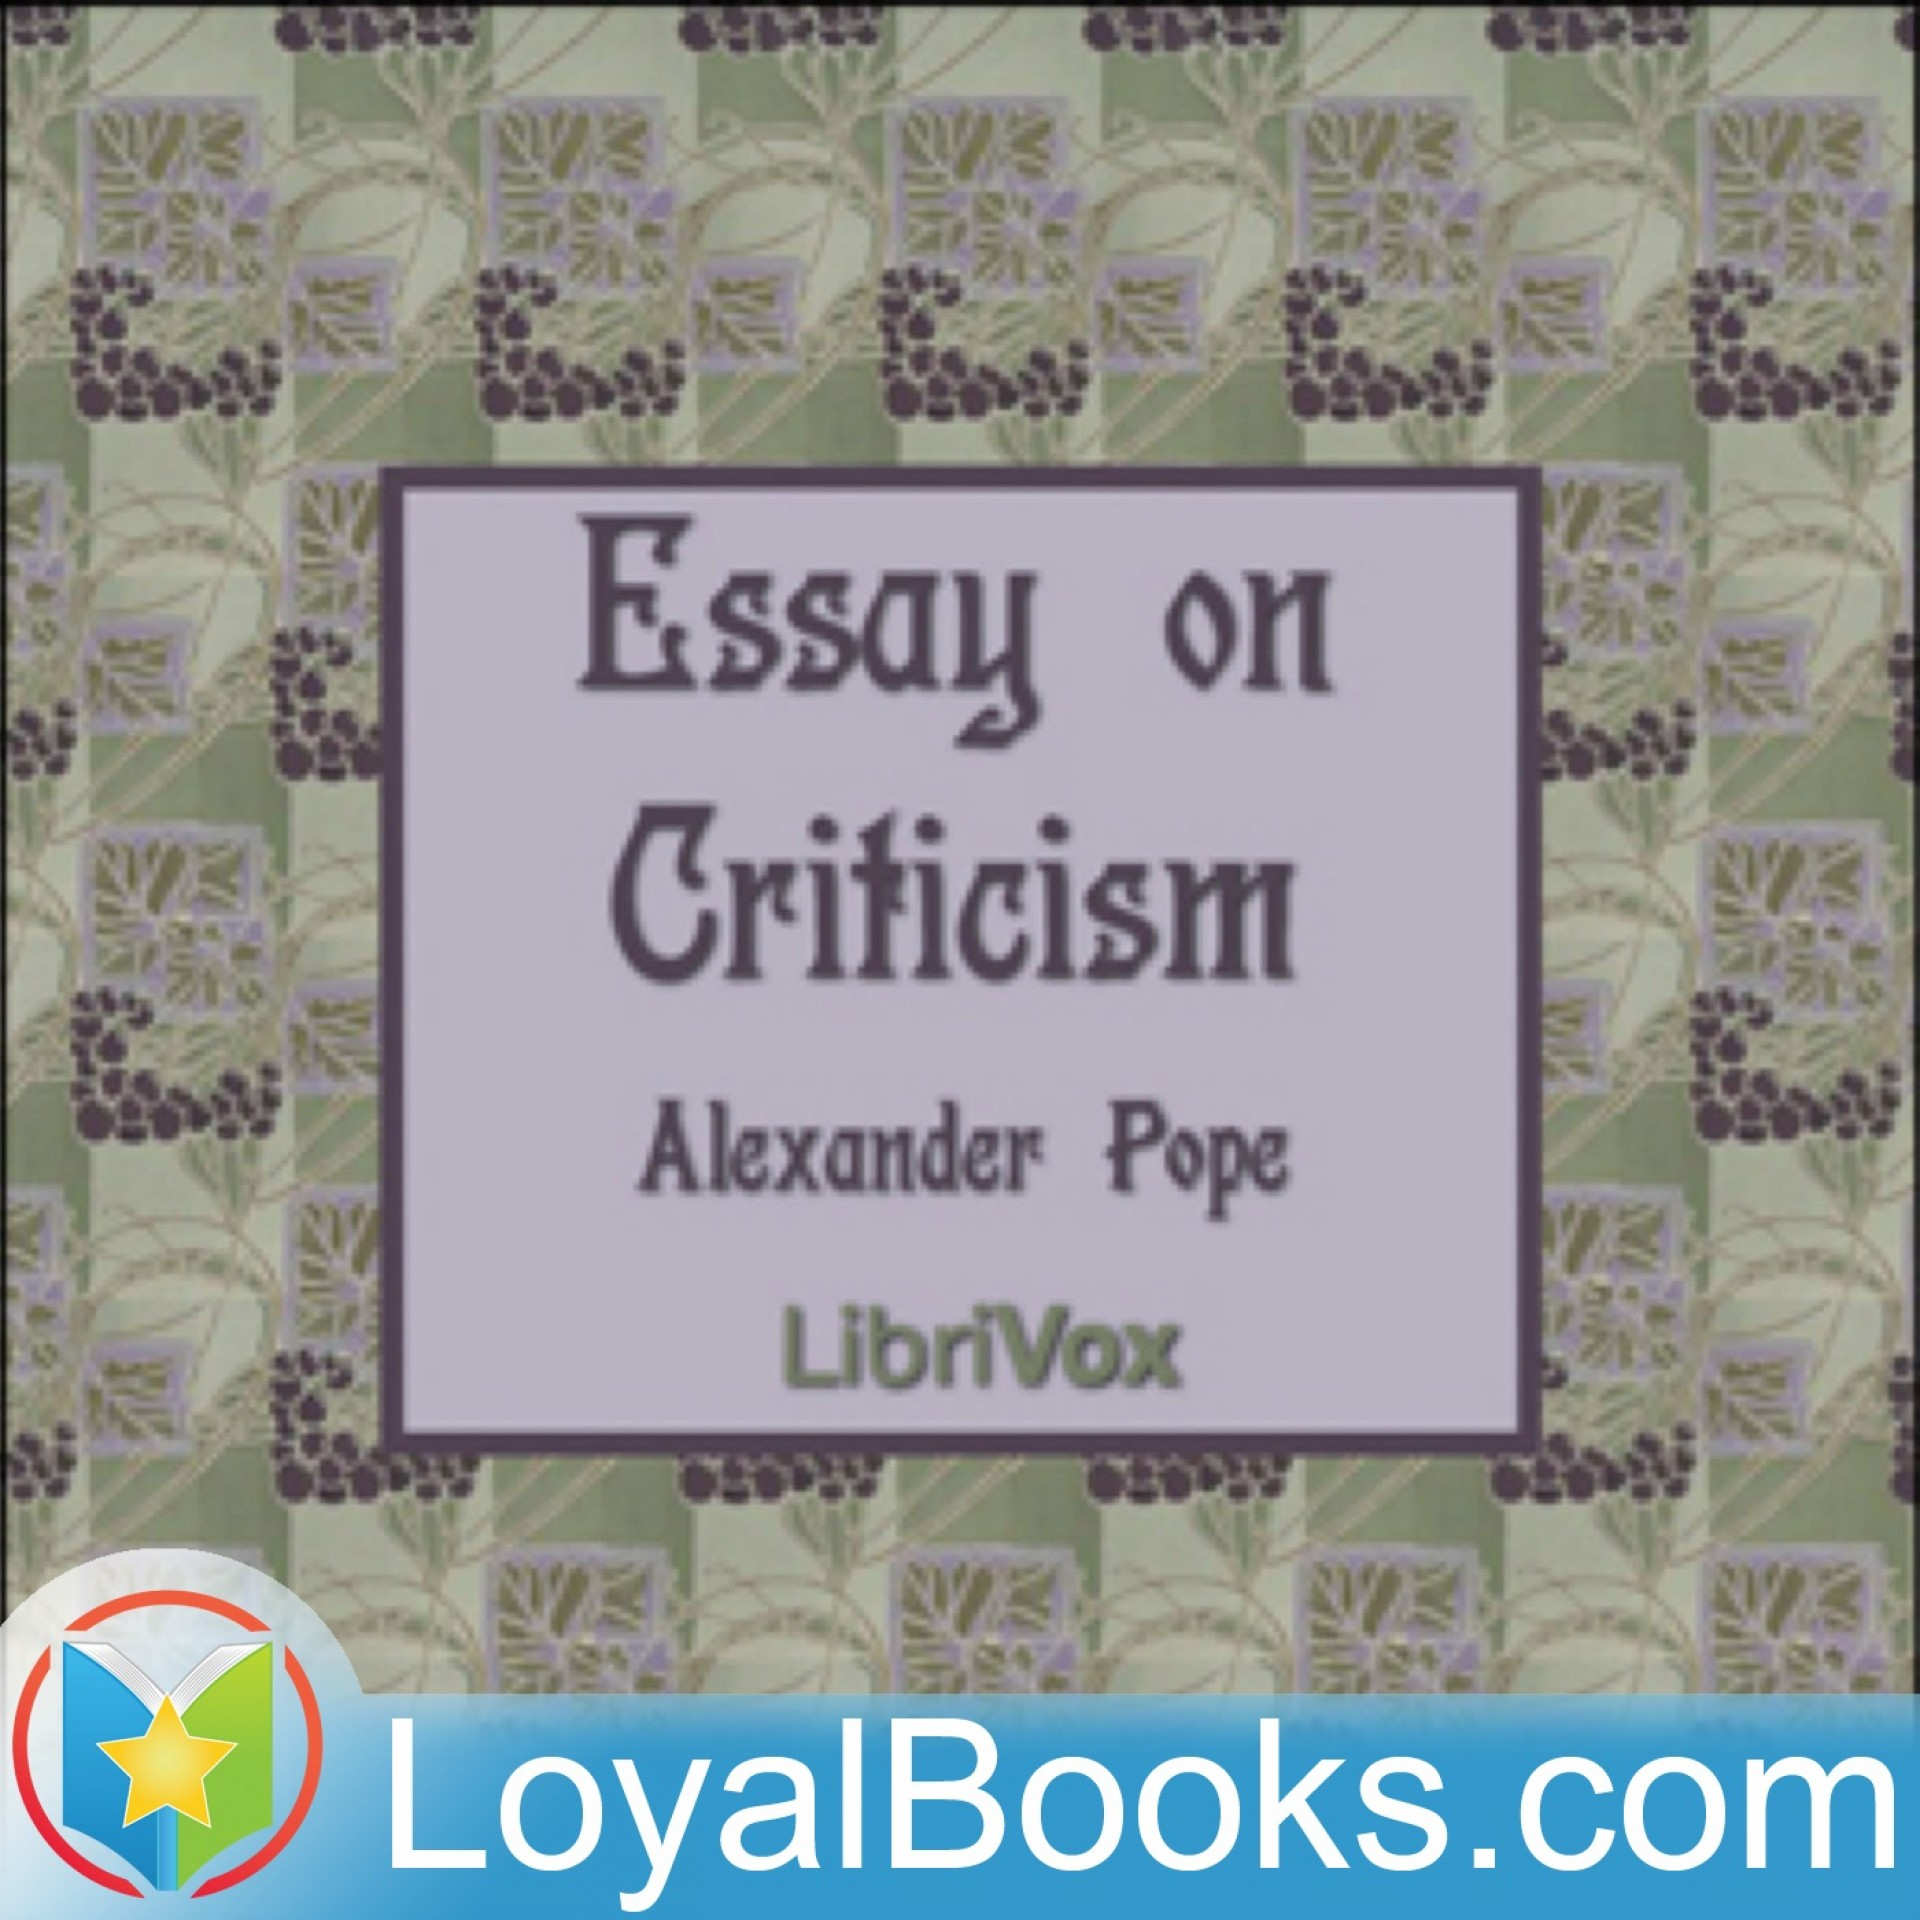 009 Essay Example On Criticism By Alexander Unique Pope Part 2 Pope's Was Written In 1920